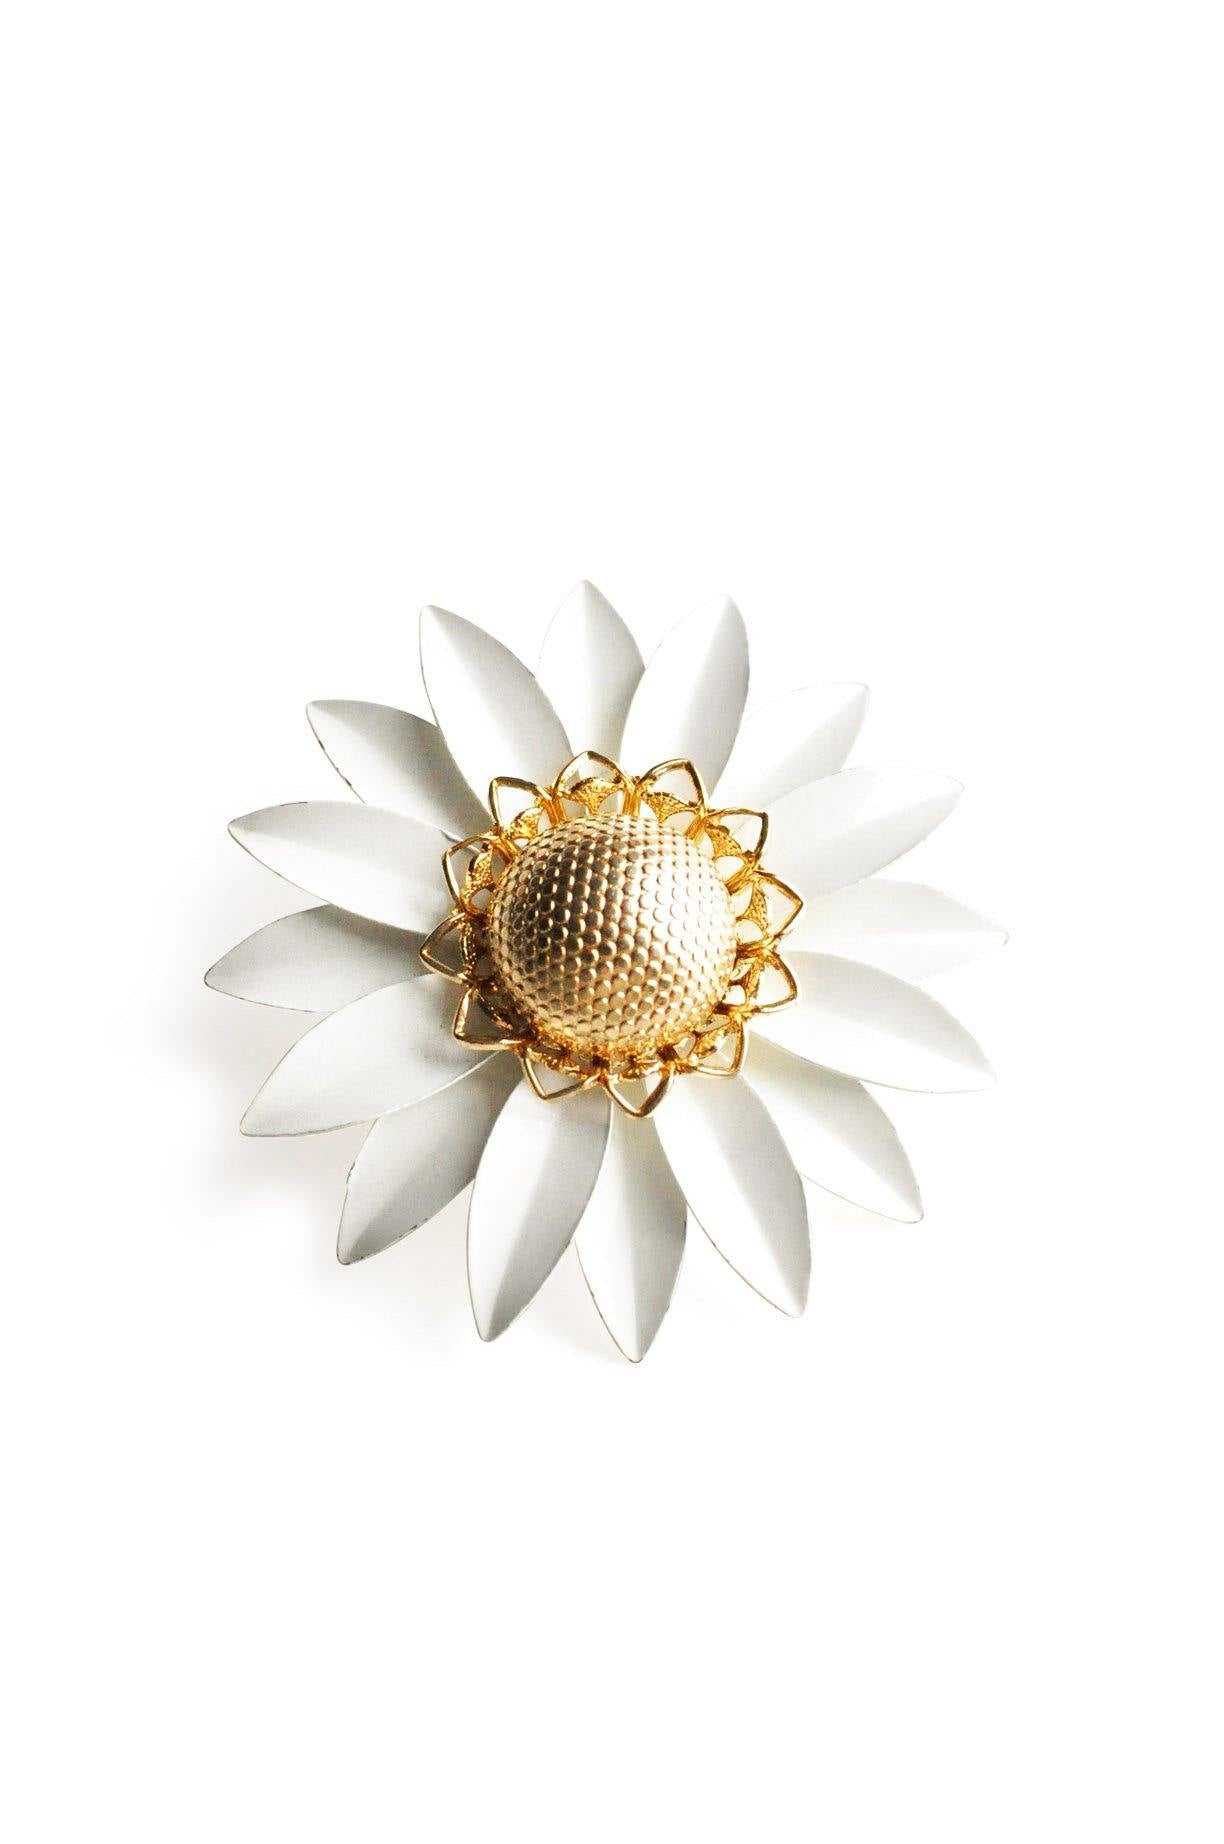 Vintage Emmons Flower Brooch from Sweet & Spark.